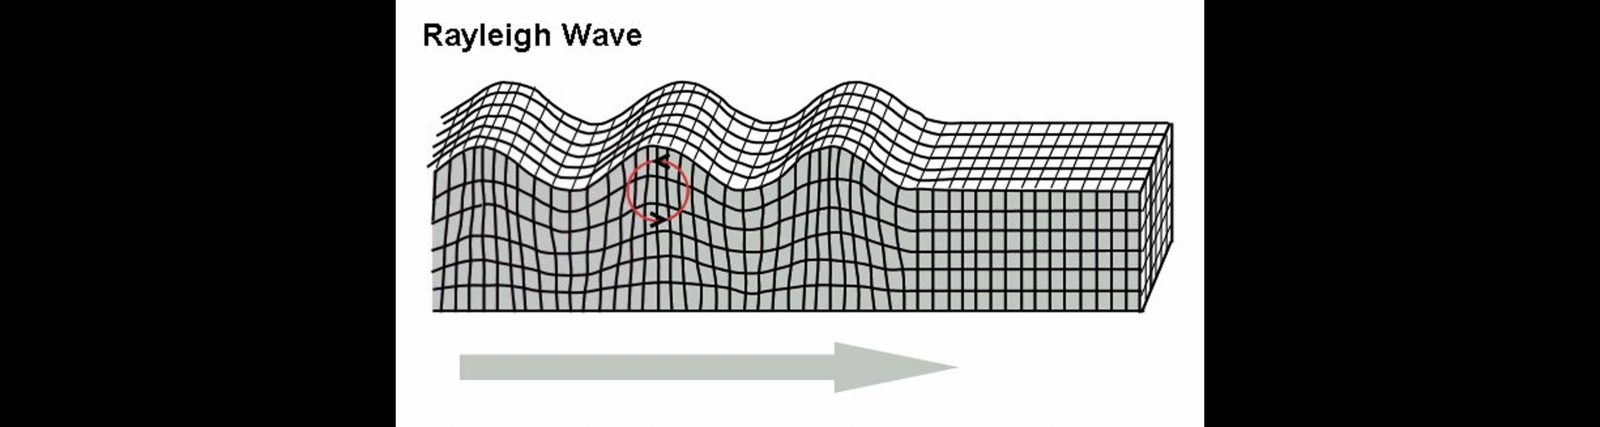 Example of Rayleigh wave partical motion